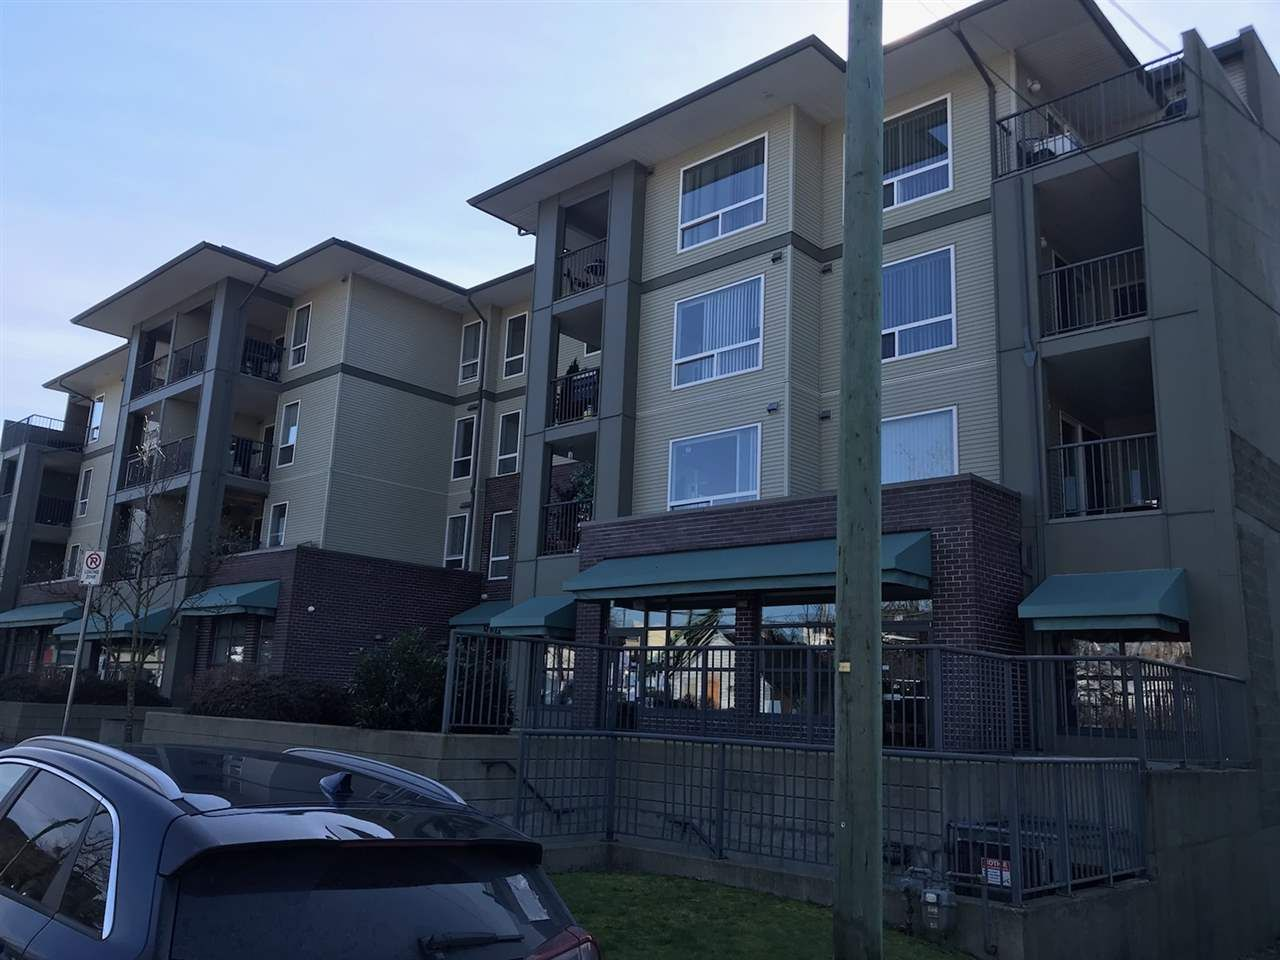 Main Photo: 22334 117 Avenue in Maple Ridge: West Central Multi-Family Commercial for sale : MLS®# C8037386